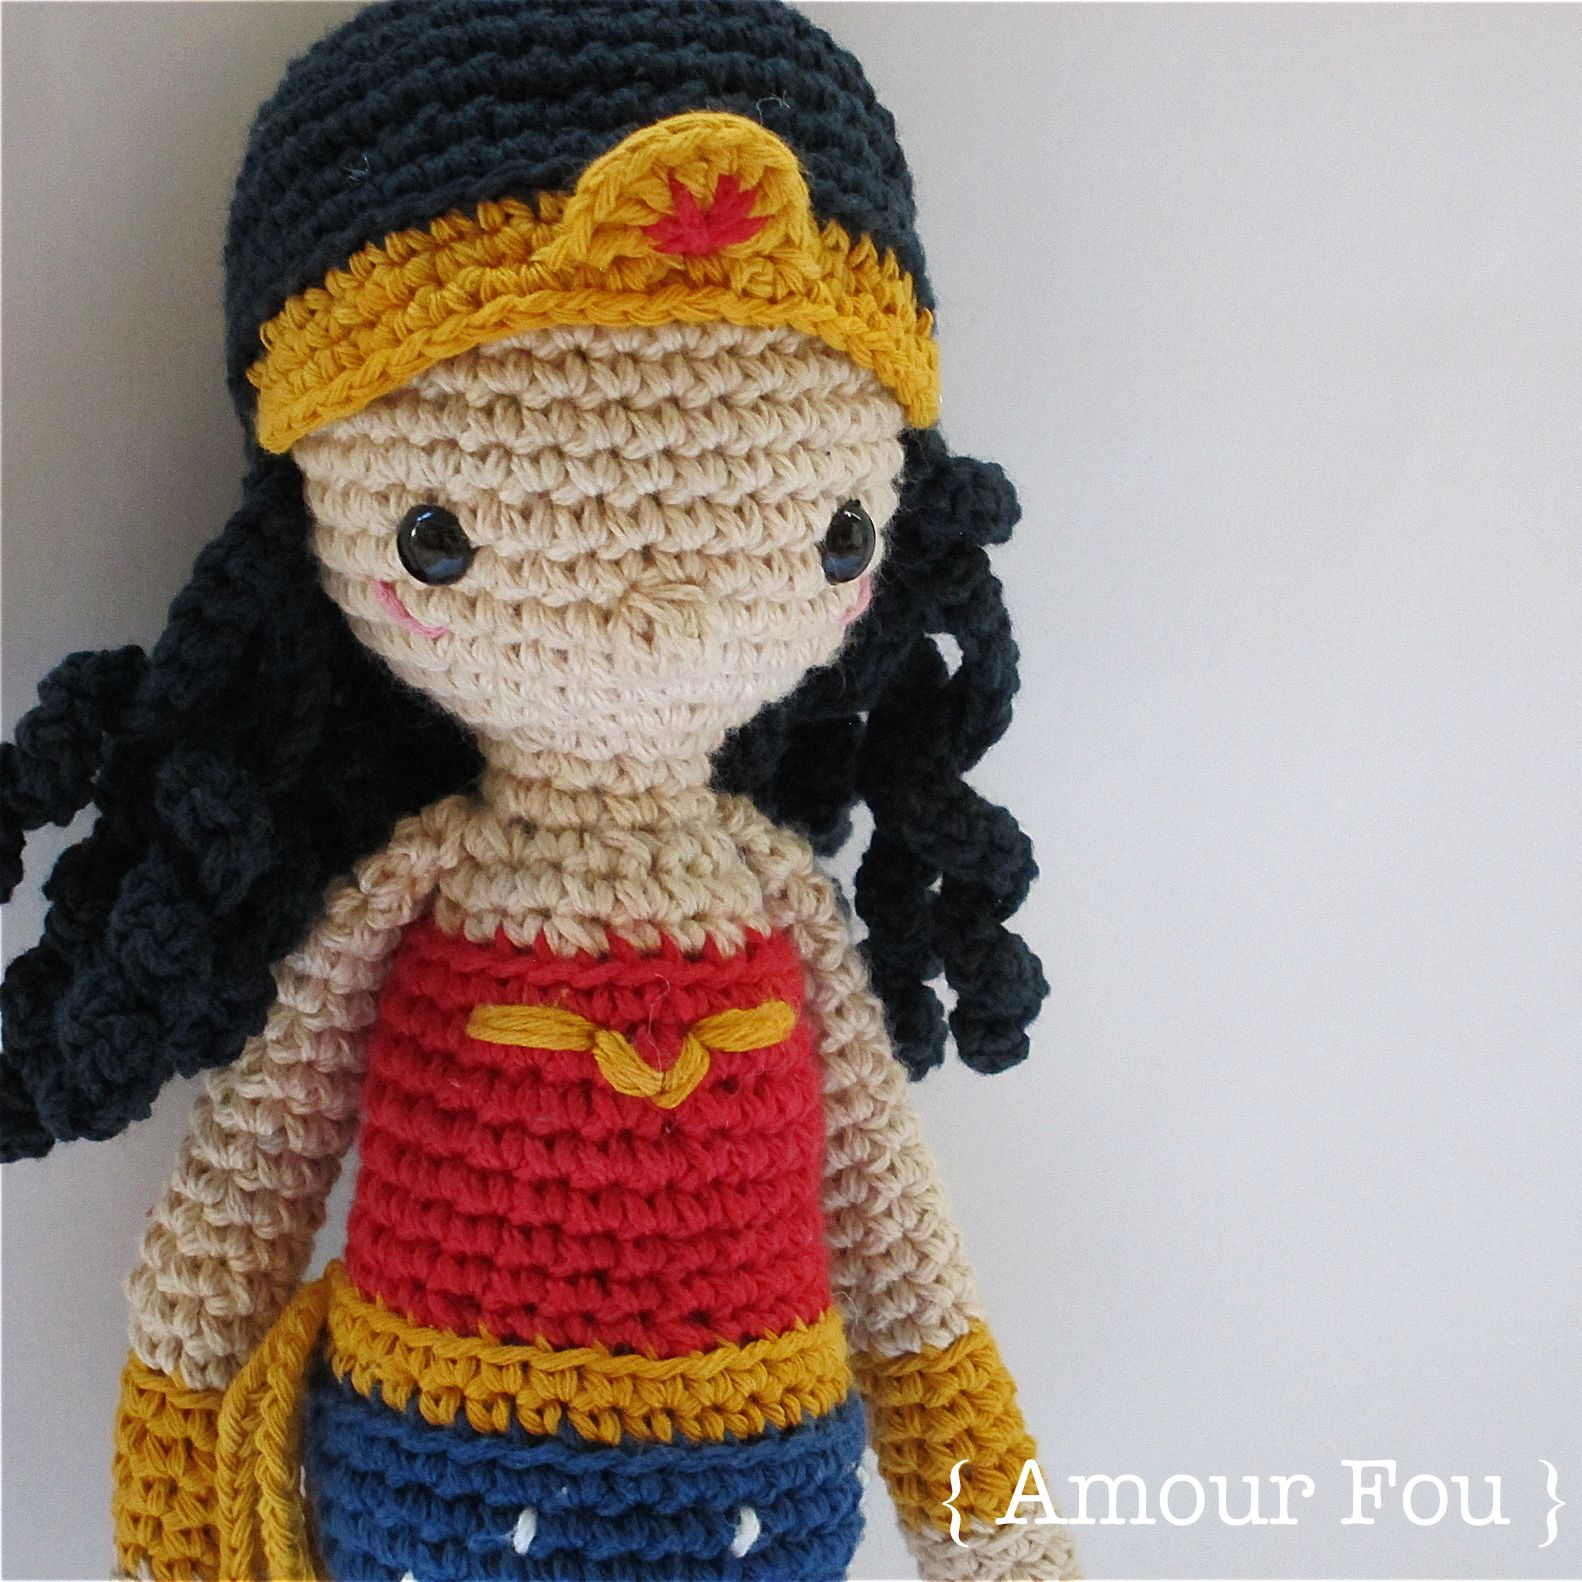 Wonder woman crochet pattern by amour fou amour fou wonder woman crochet pattern by amour fou bankloansurffo Choice Image